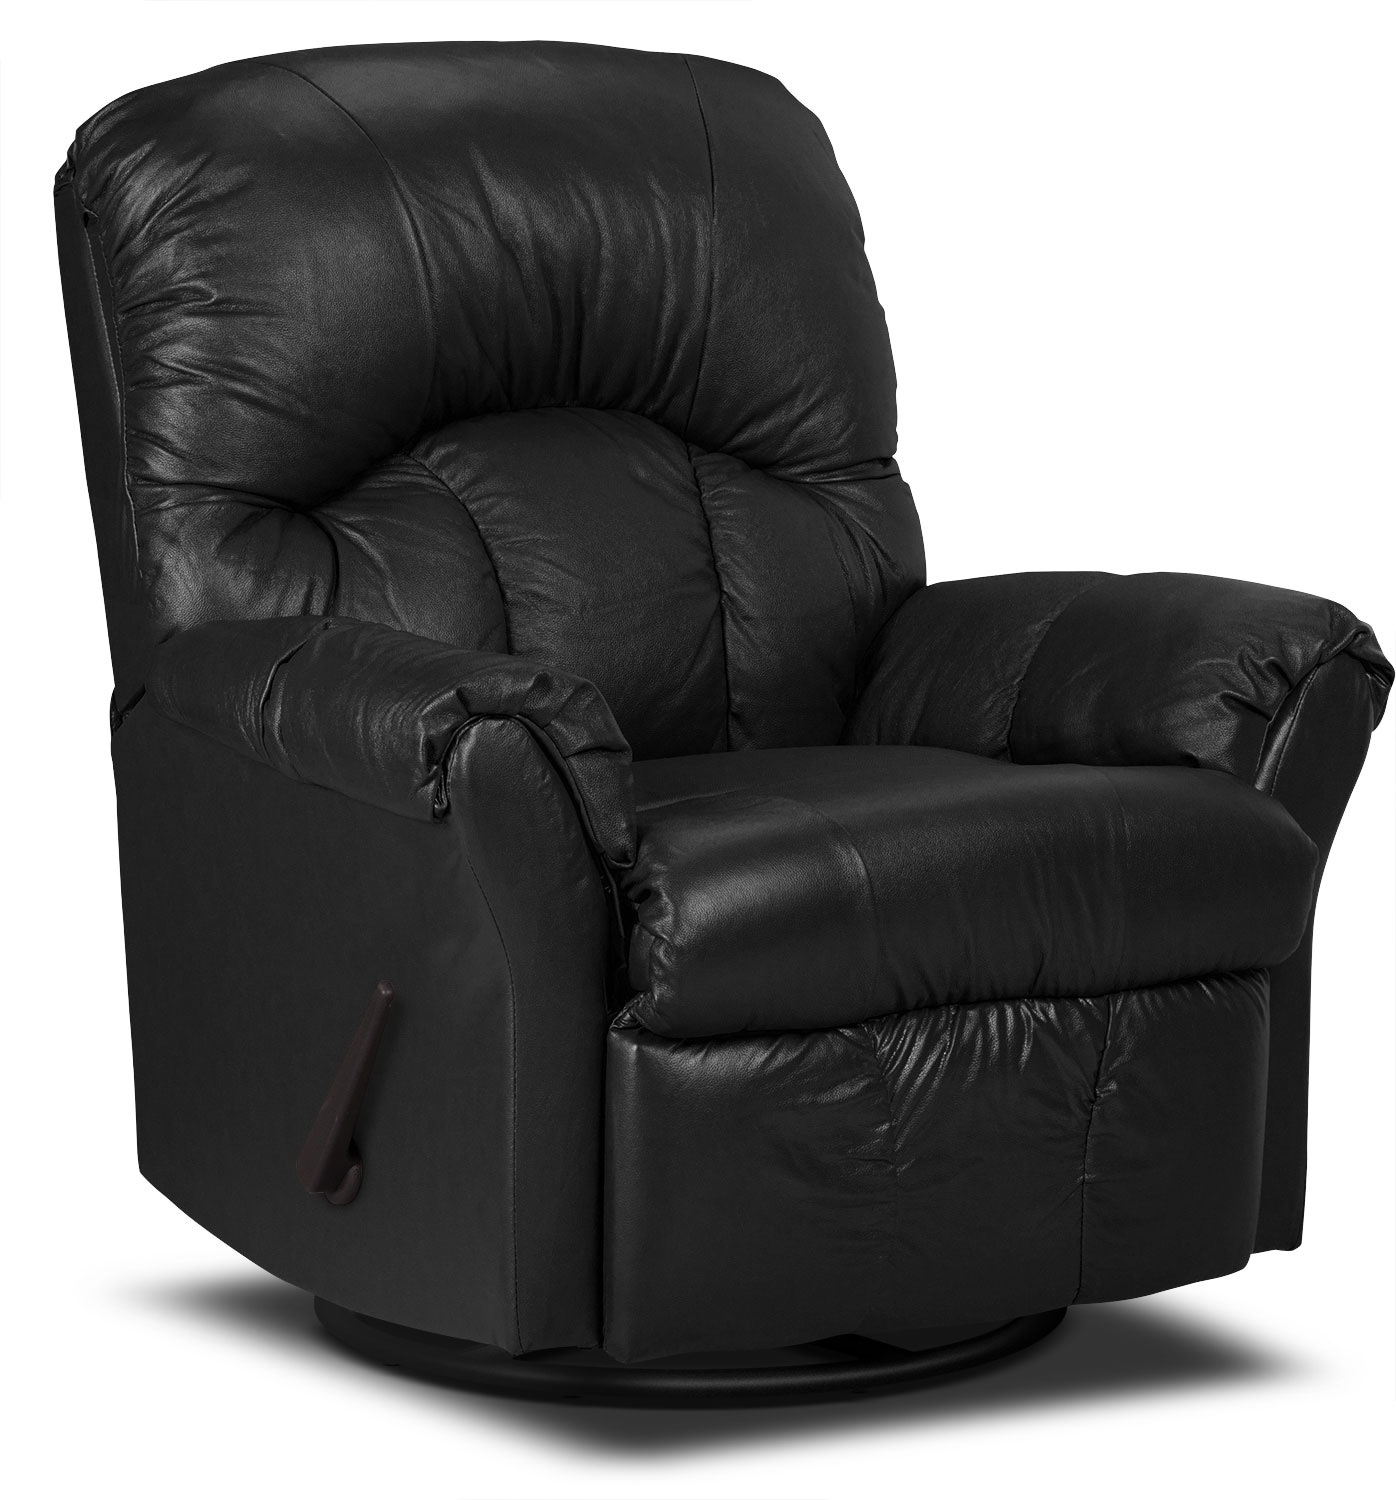 Designed2B Recliner 6734 Genuine Leather Swivel Glider Chair - Black